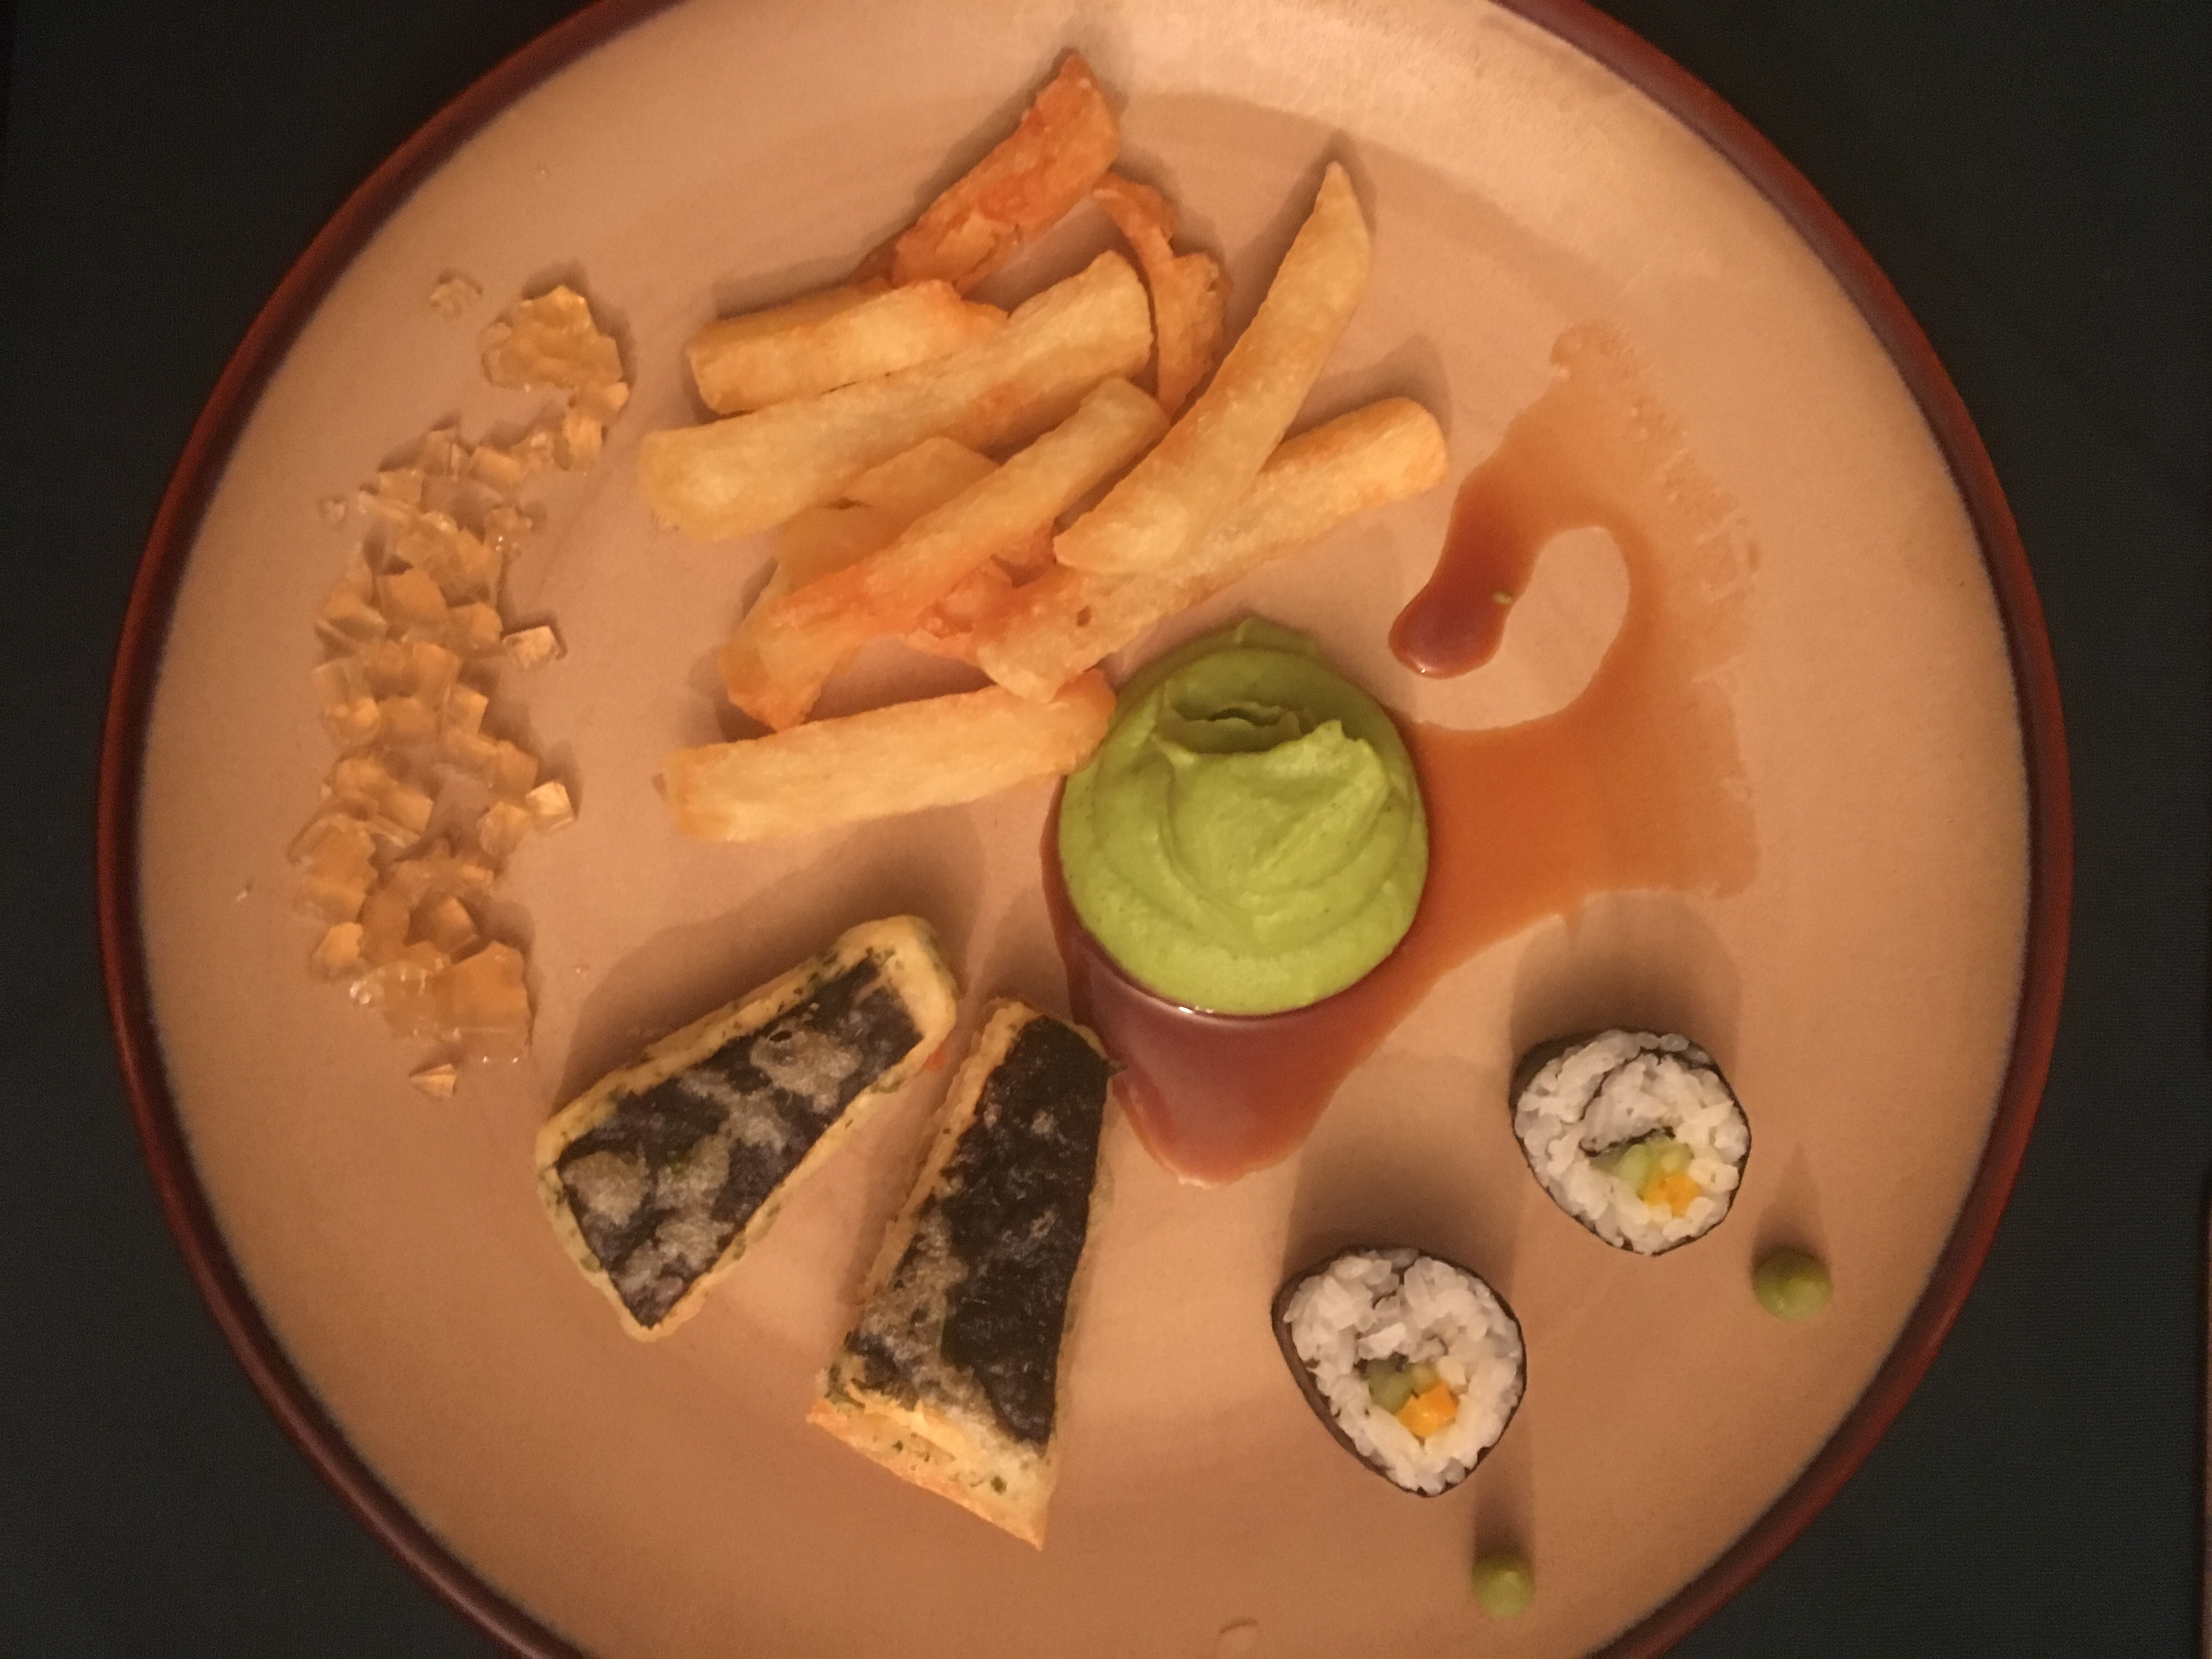 Real food lover good food starts with good ingredients from good soil carrot lox cucumber sushi rolls with tamari pearls tofu fish with curd bean skin triple cooked chips fresh pea mousse and apple cider vinegar jelly forumfinder Image collections